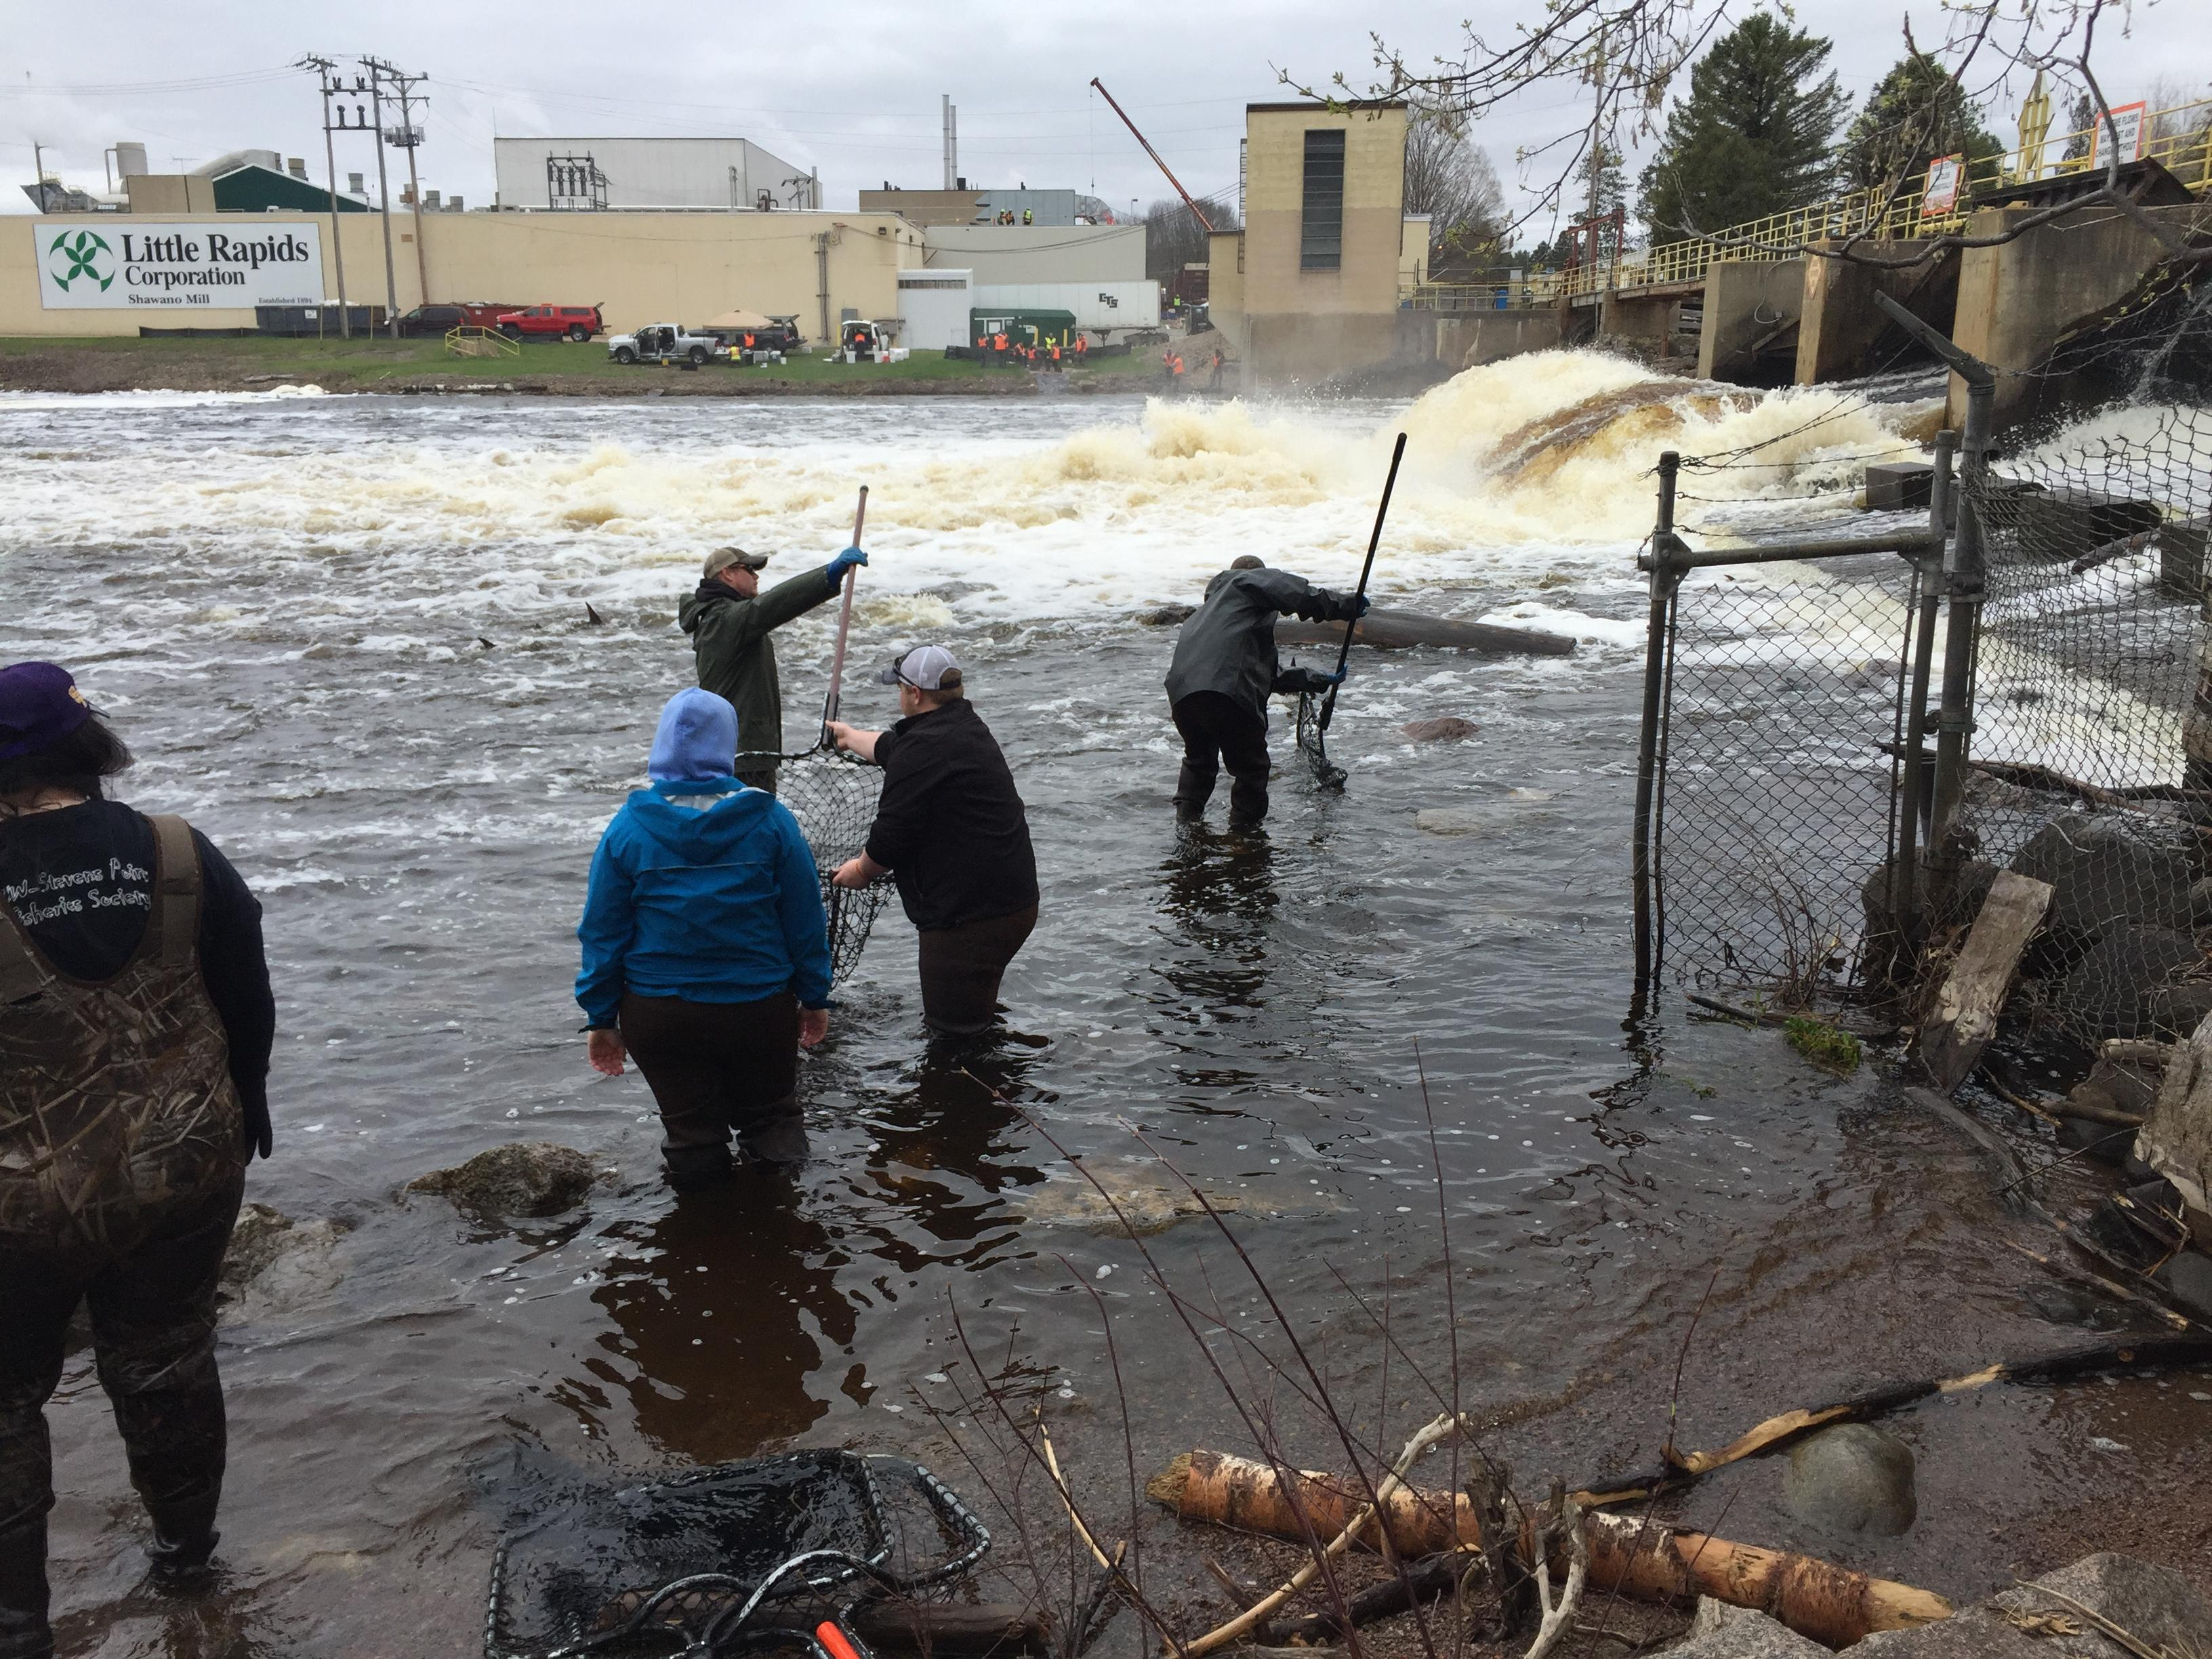 Sturgeon netted below Shawano Dam, April 19, 2017 (WLUK/Eric Peterson)